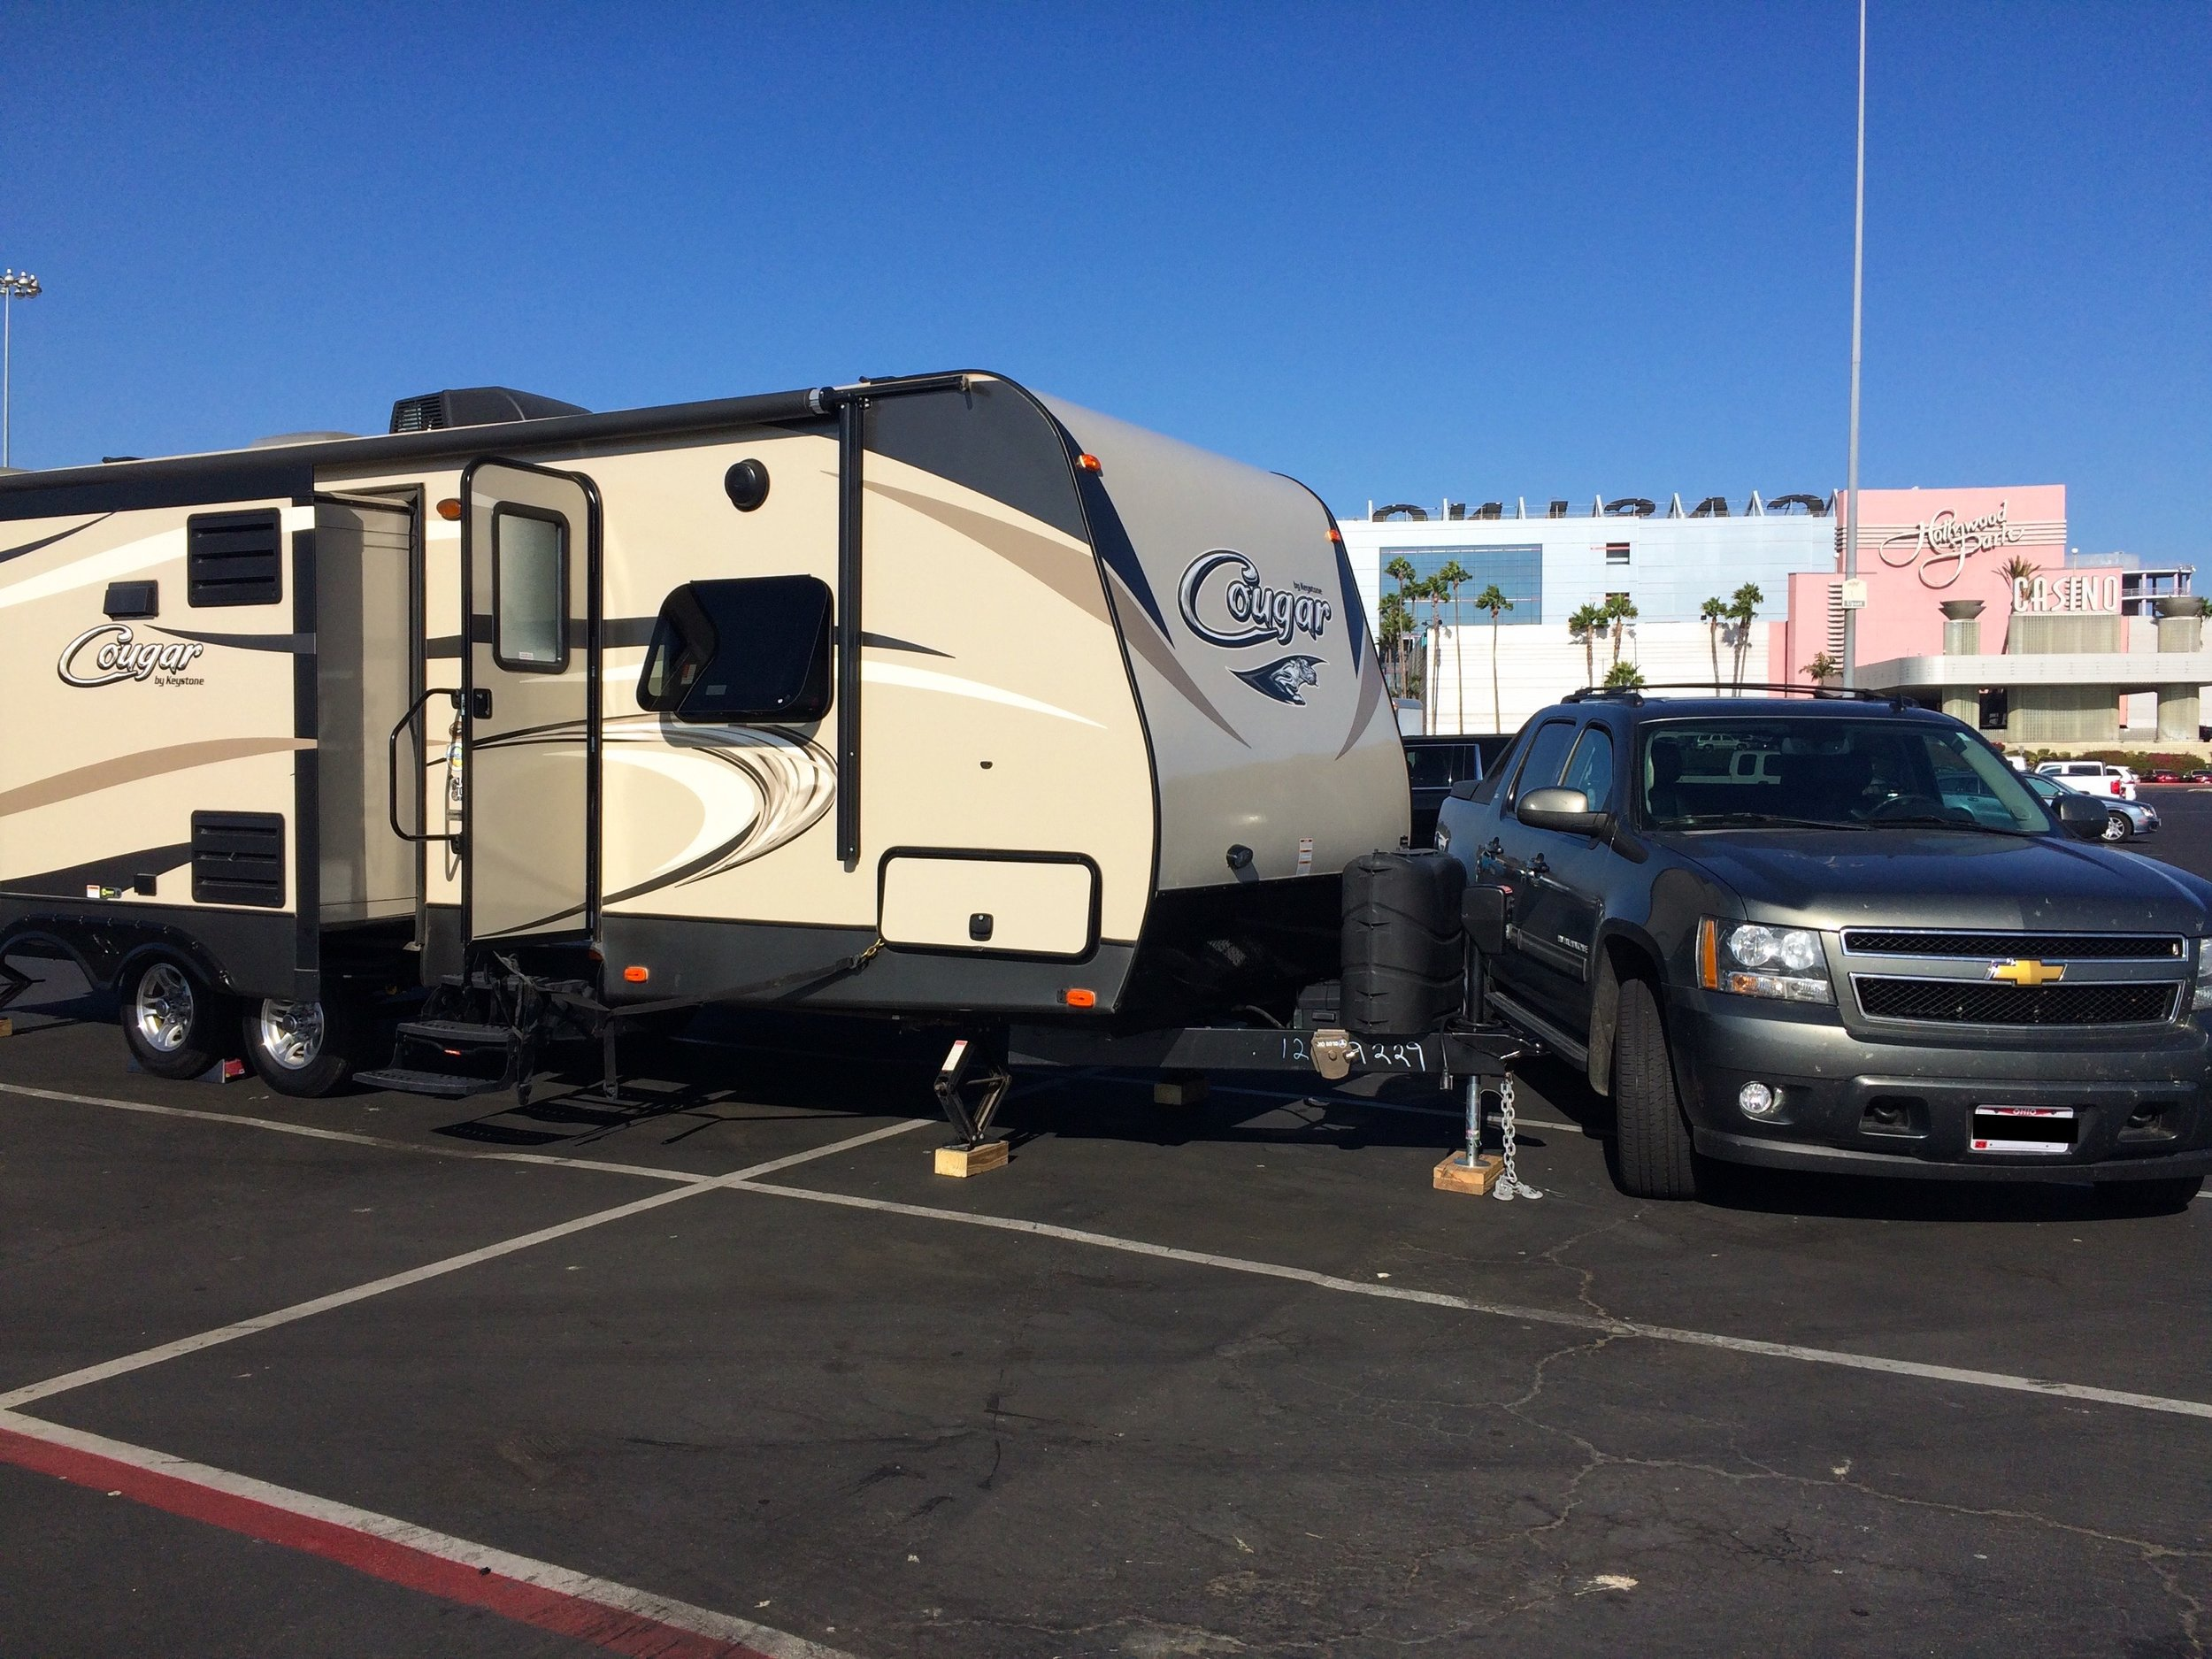 Brand new RV parked in the casino lot